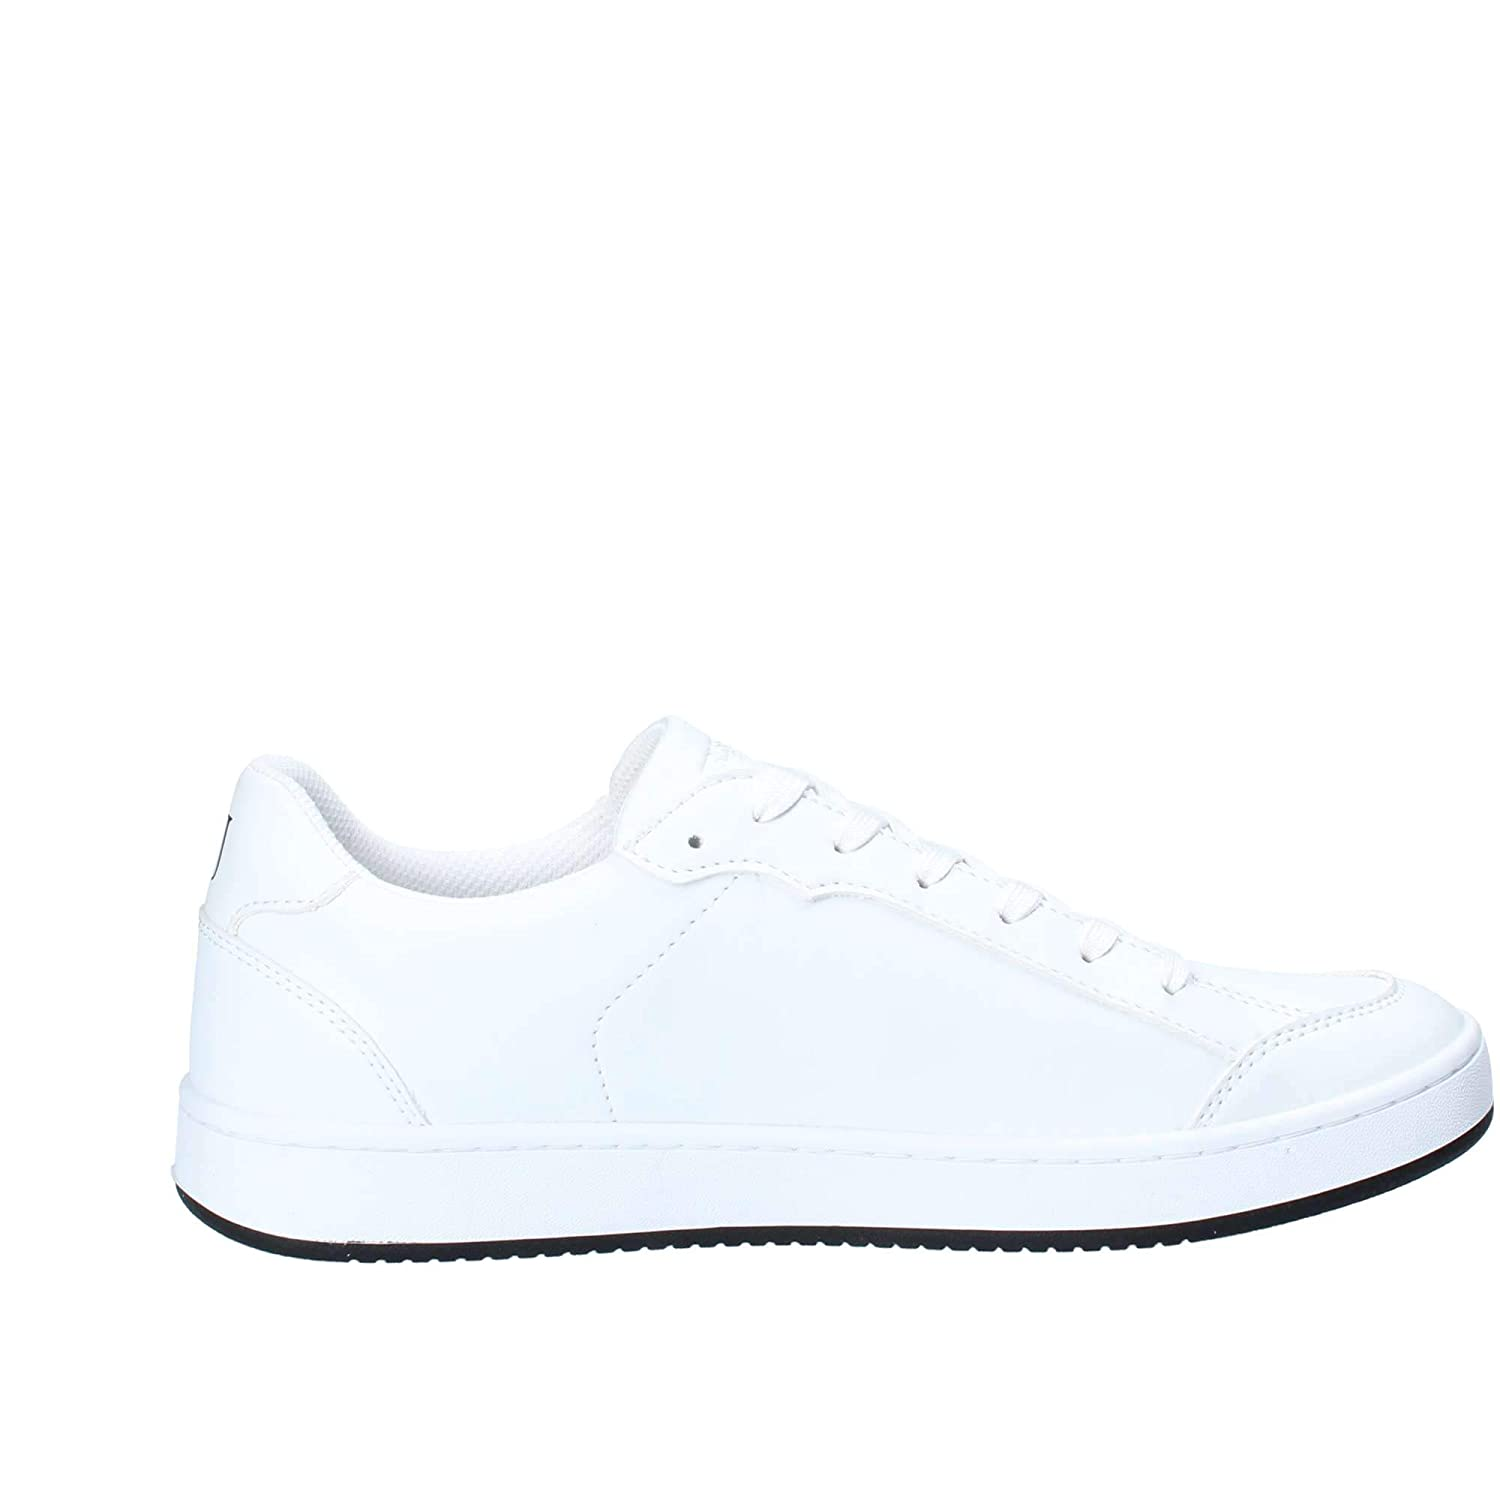 White Trussardi Sneaker Synthetic Leather 77A00131 41 M EU 8 US